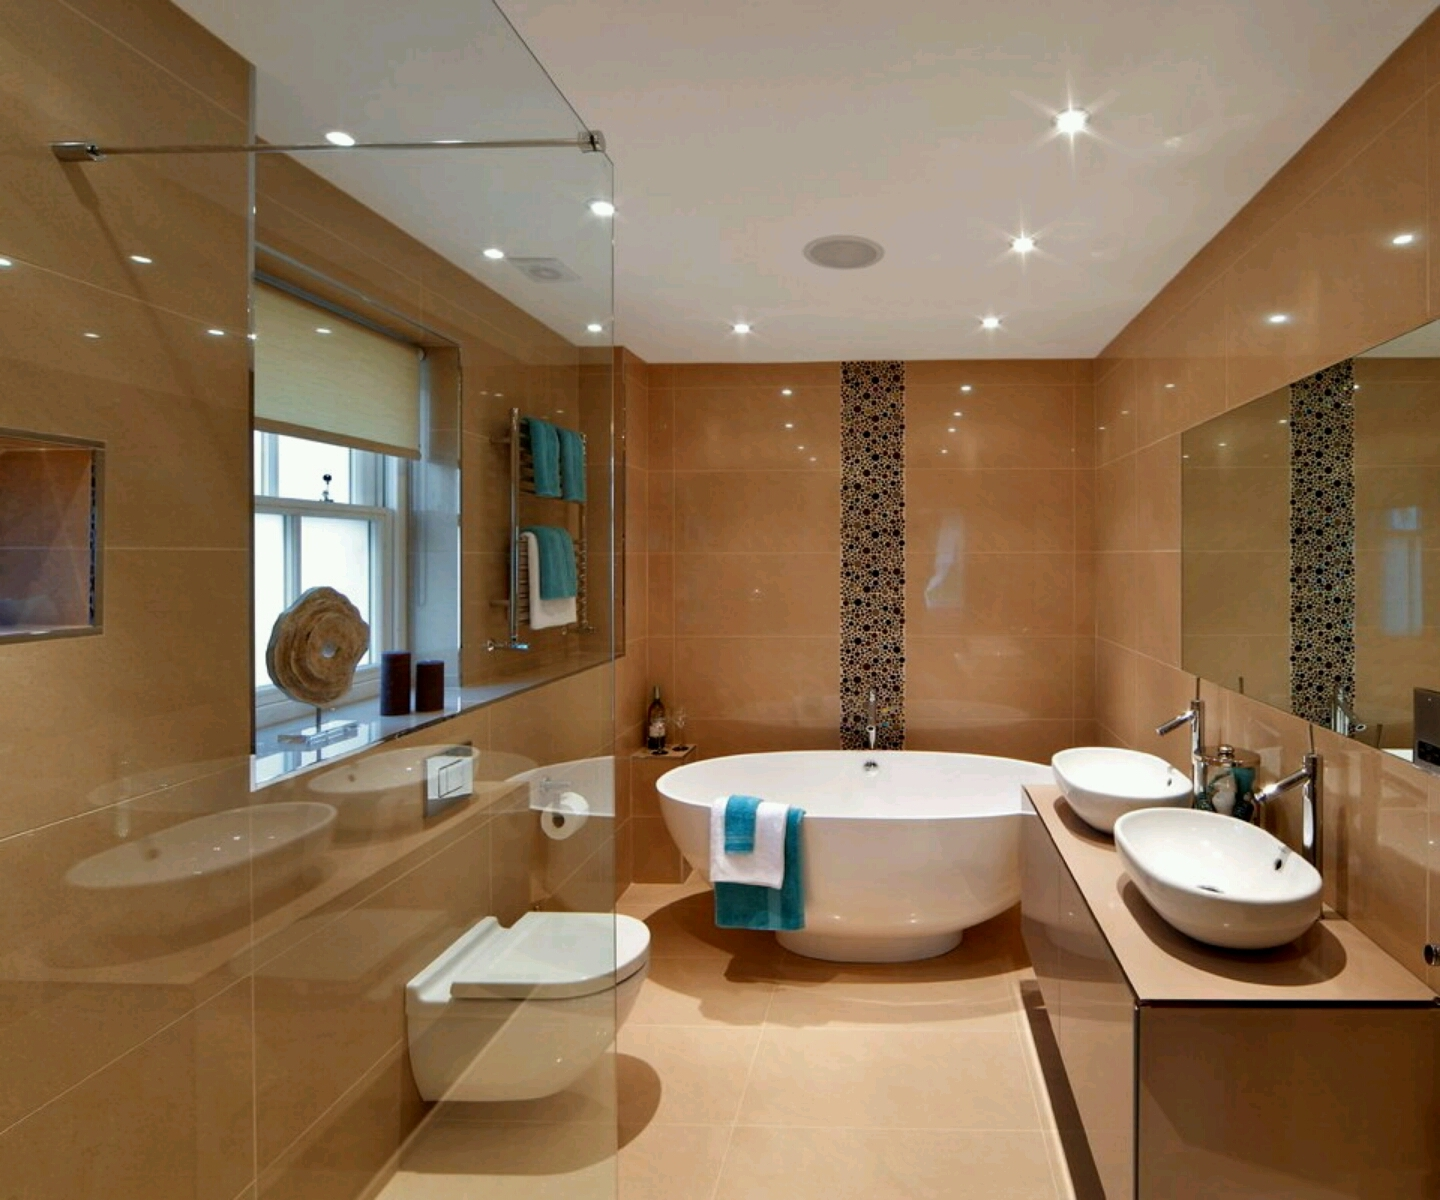 5-bathroom-vessel-sinks-modern